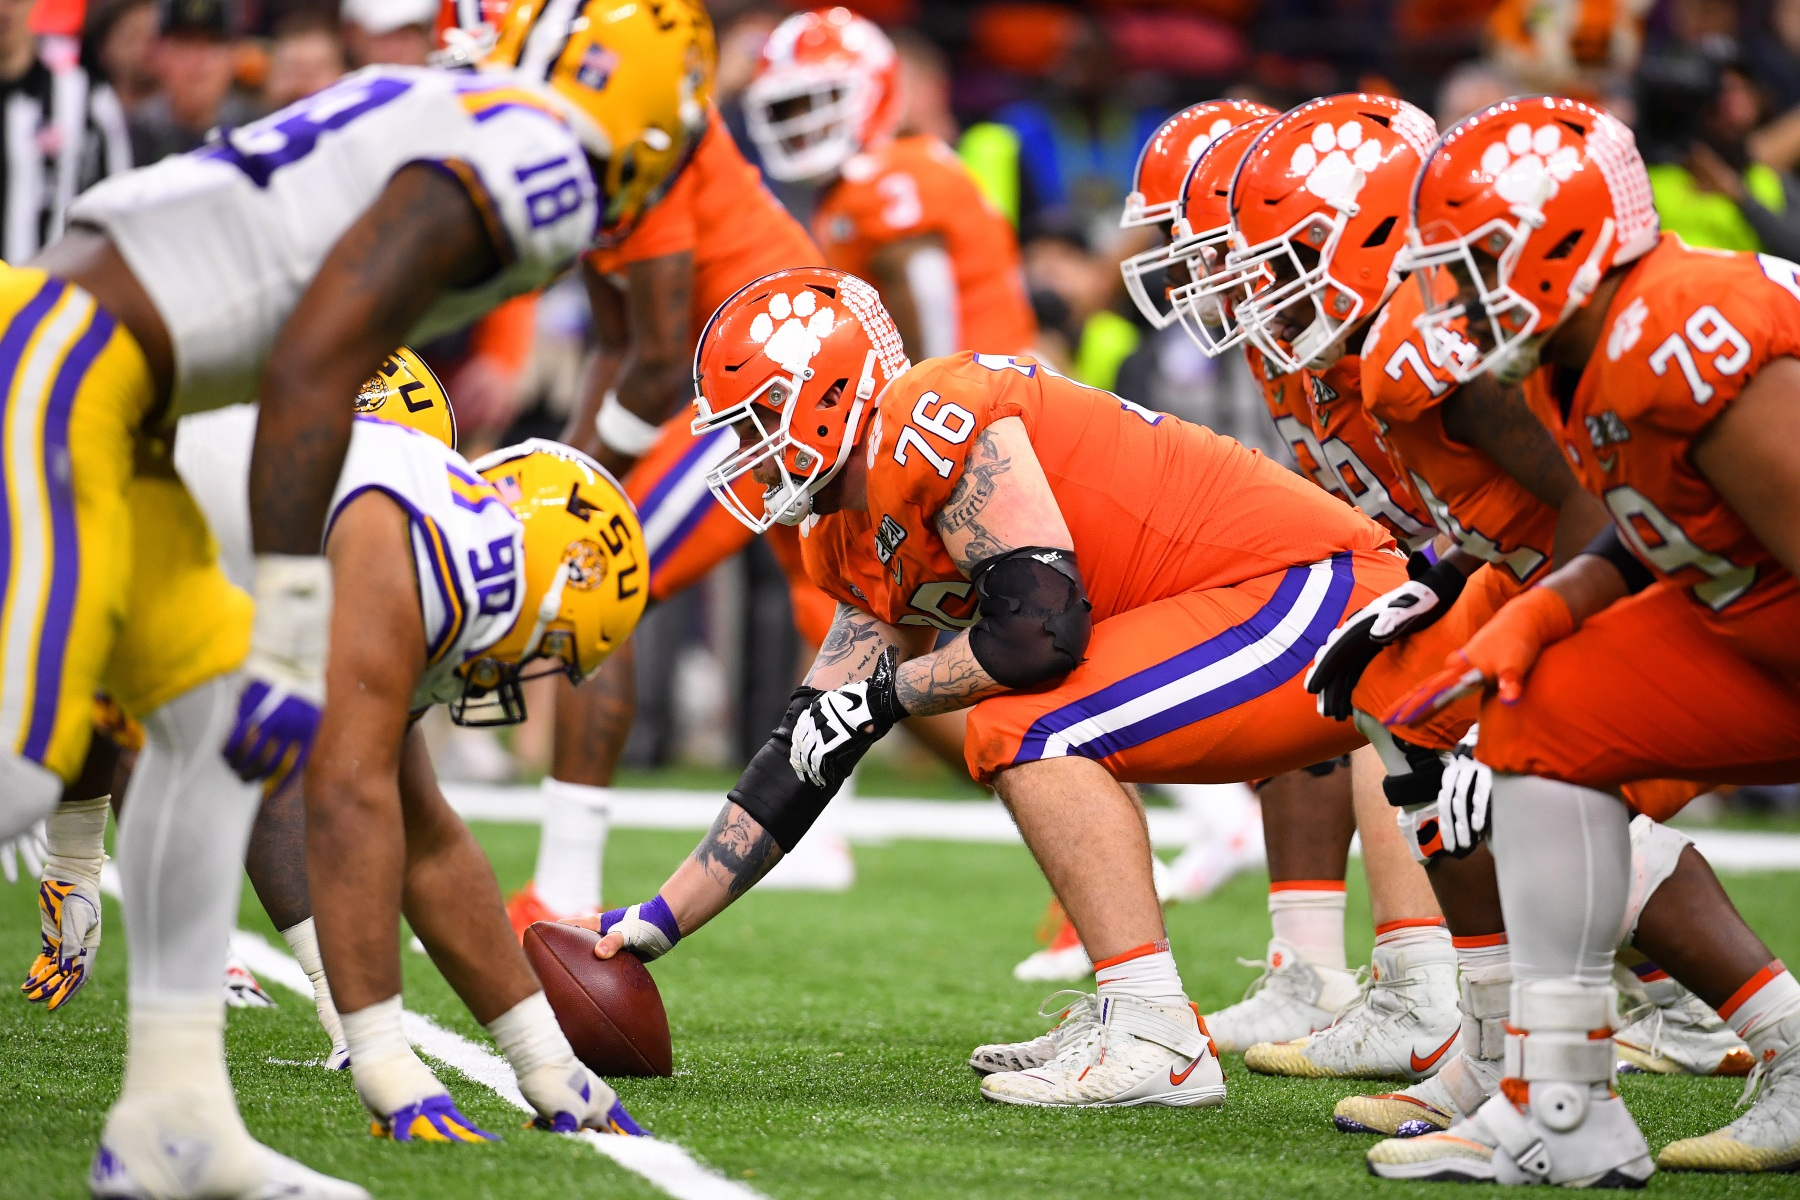 The Clemson Tigers prepare to snap the ball against the LSU Tigers. (Jamie Schwaberow/Getty)